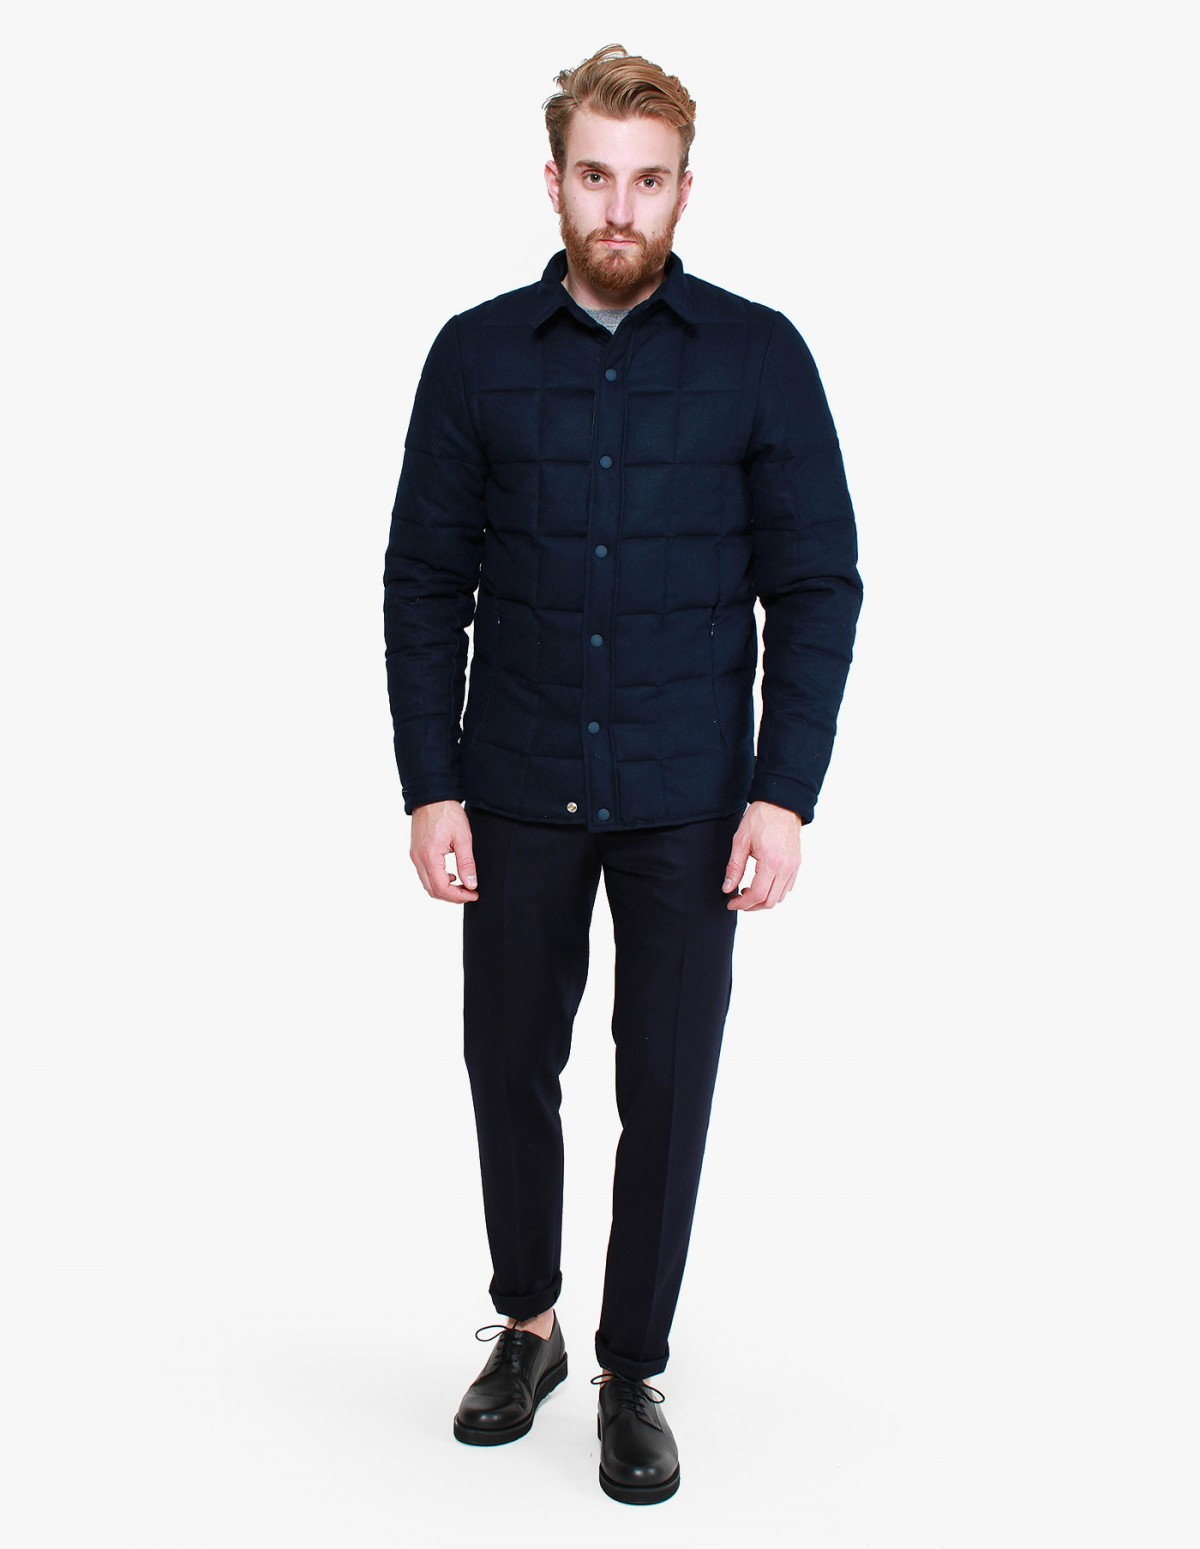 Penfield Loring Melton Wool Thermal Jacket in Navy